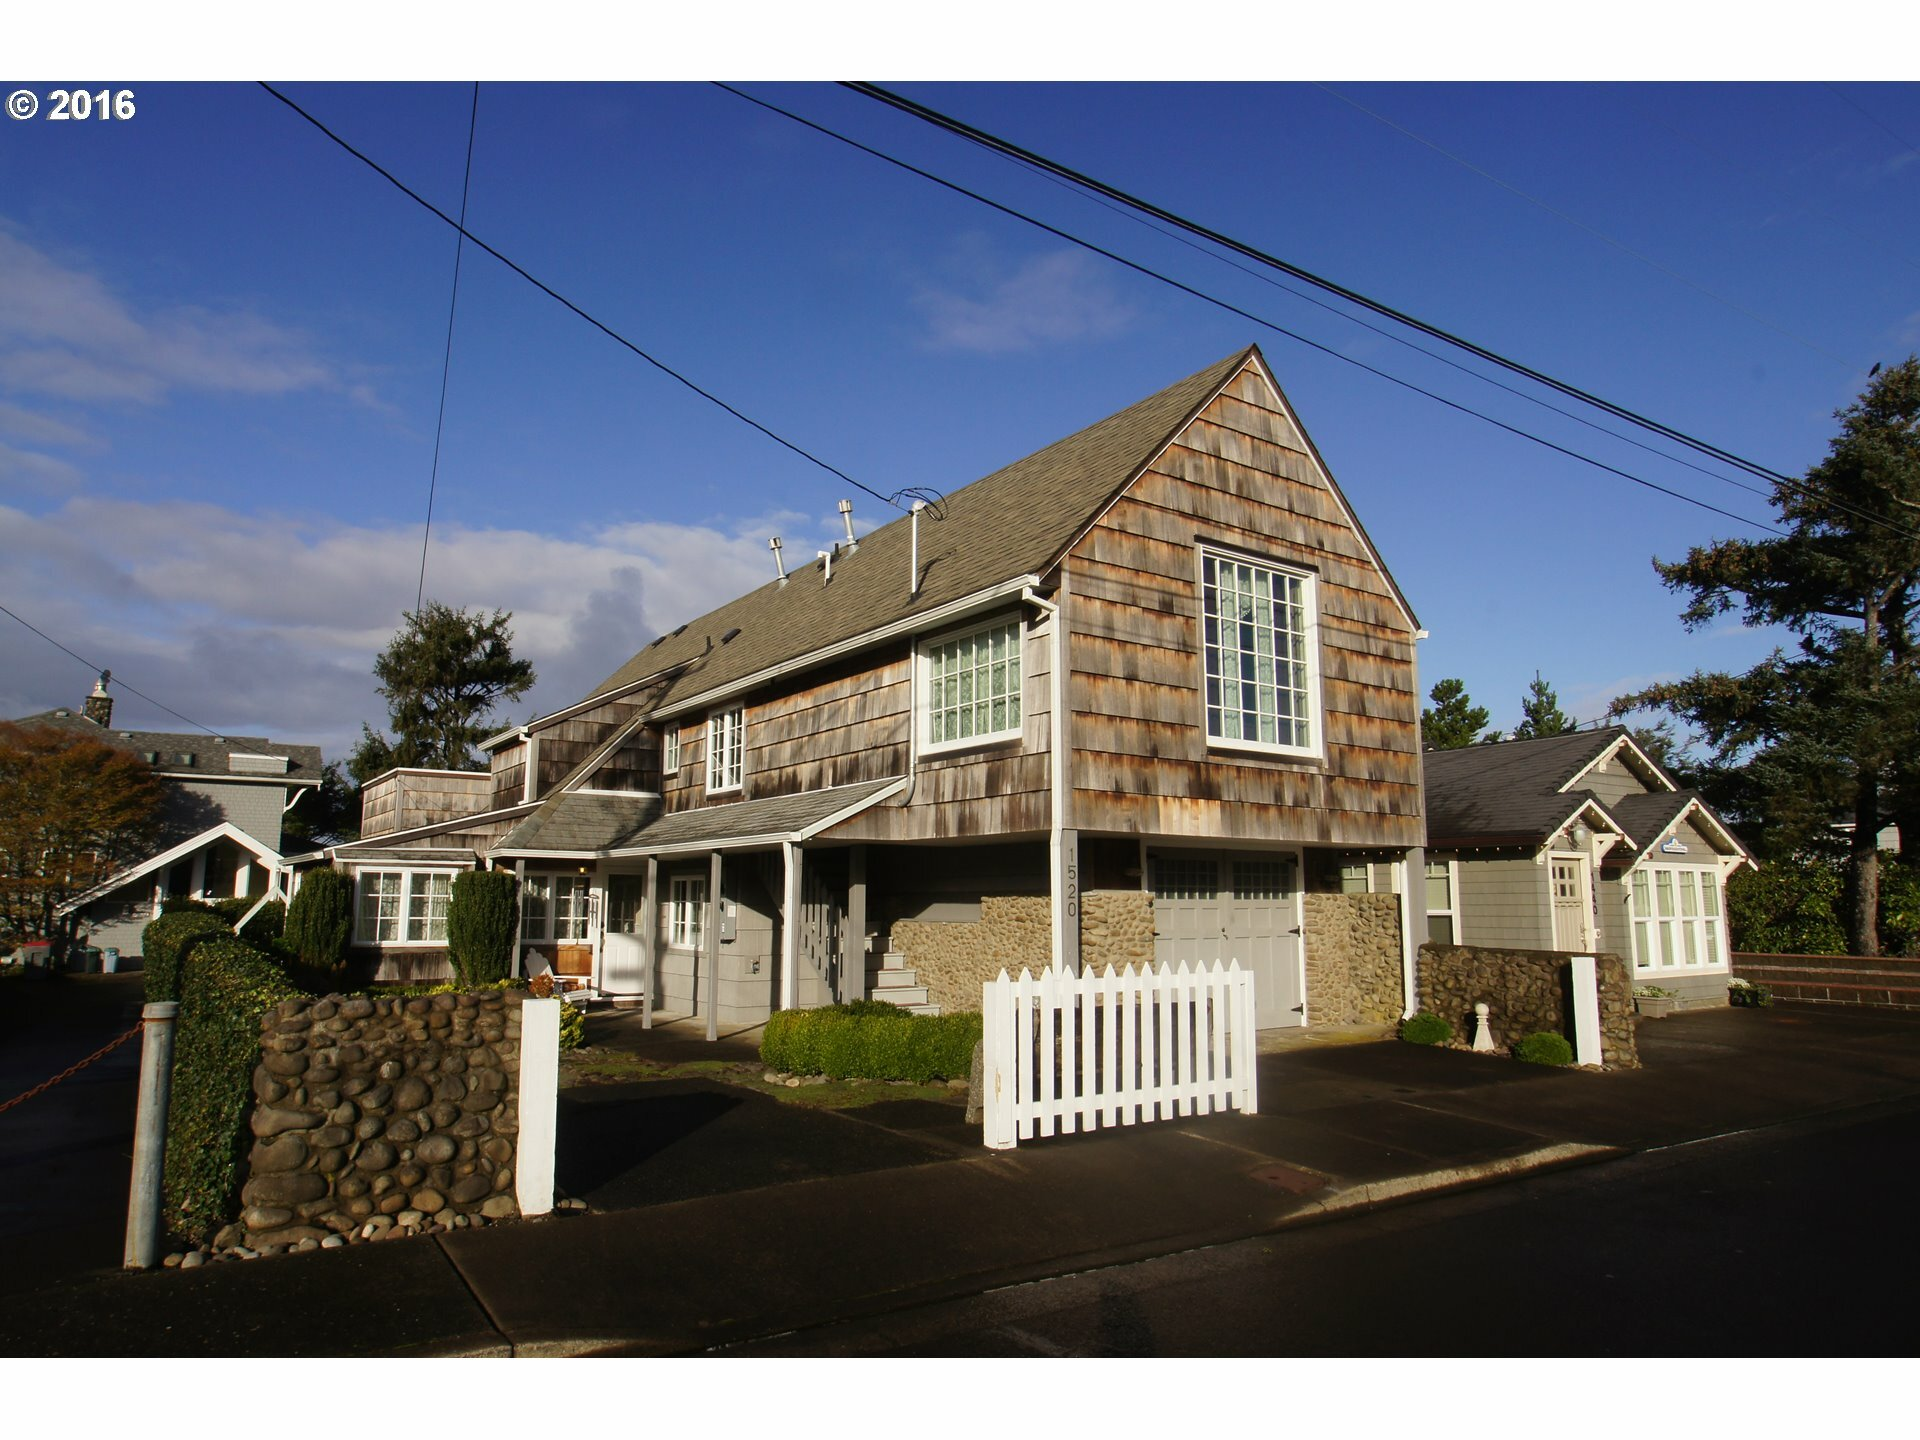 1520 Beach Dr, Seaside, OR - USA (photo 1)